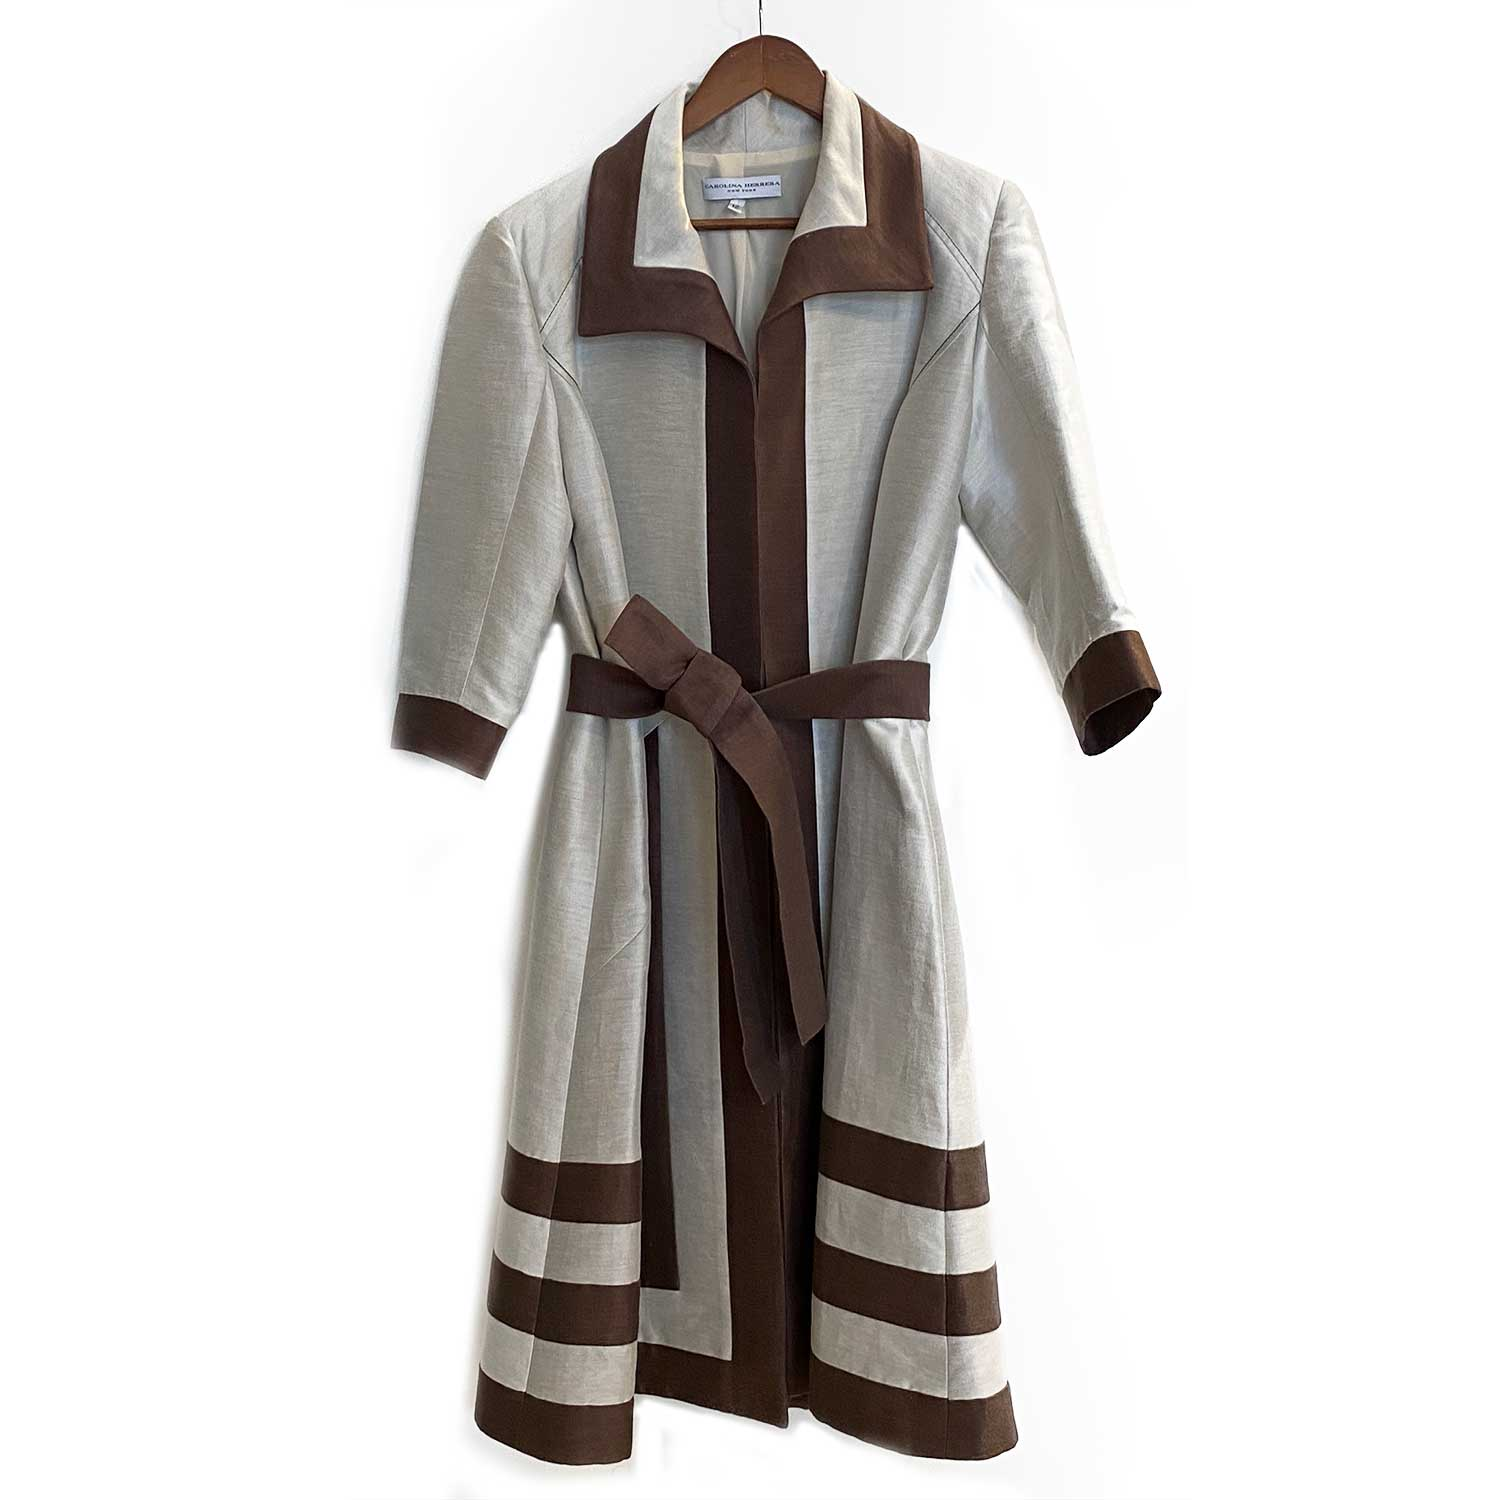 Trench Coat Carolina Herrera Beige e Marrom